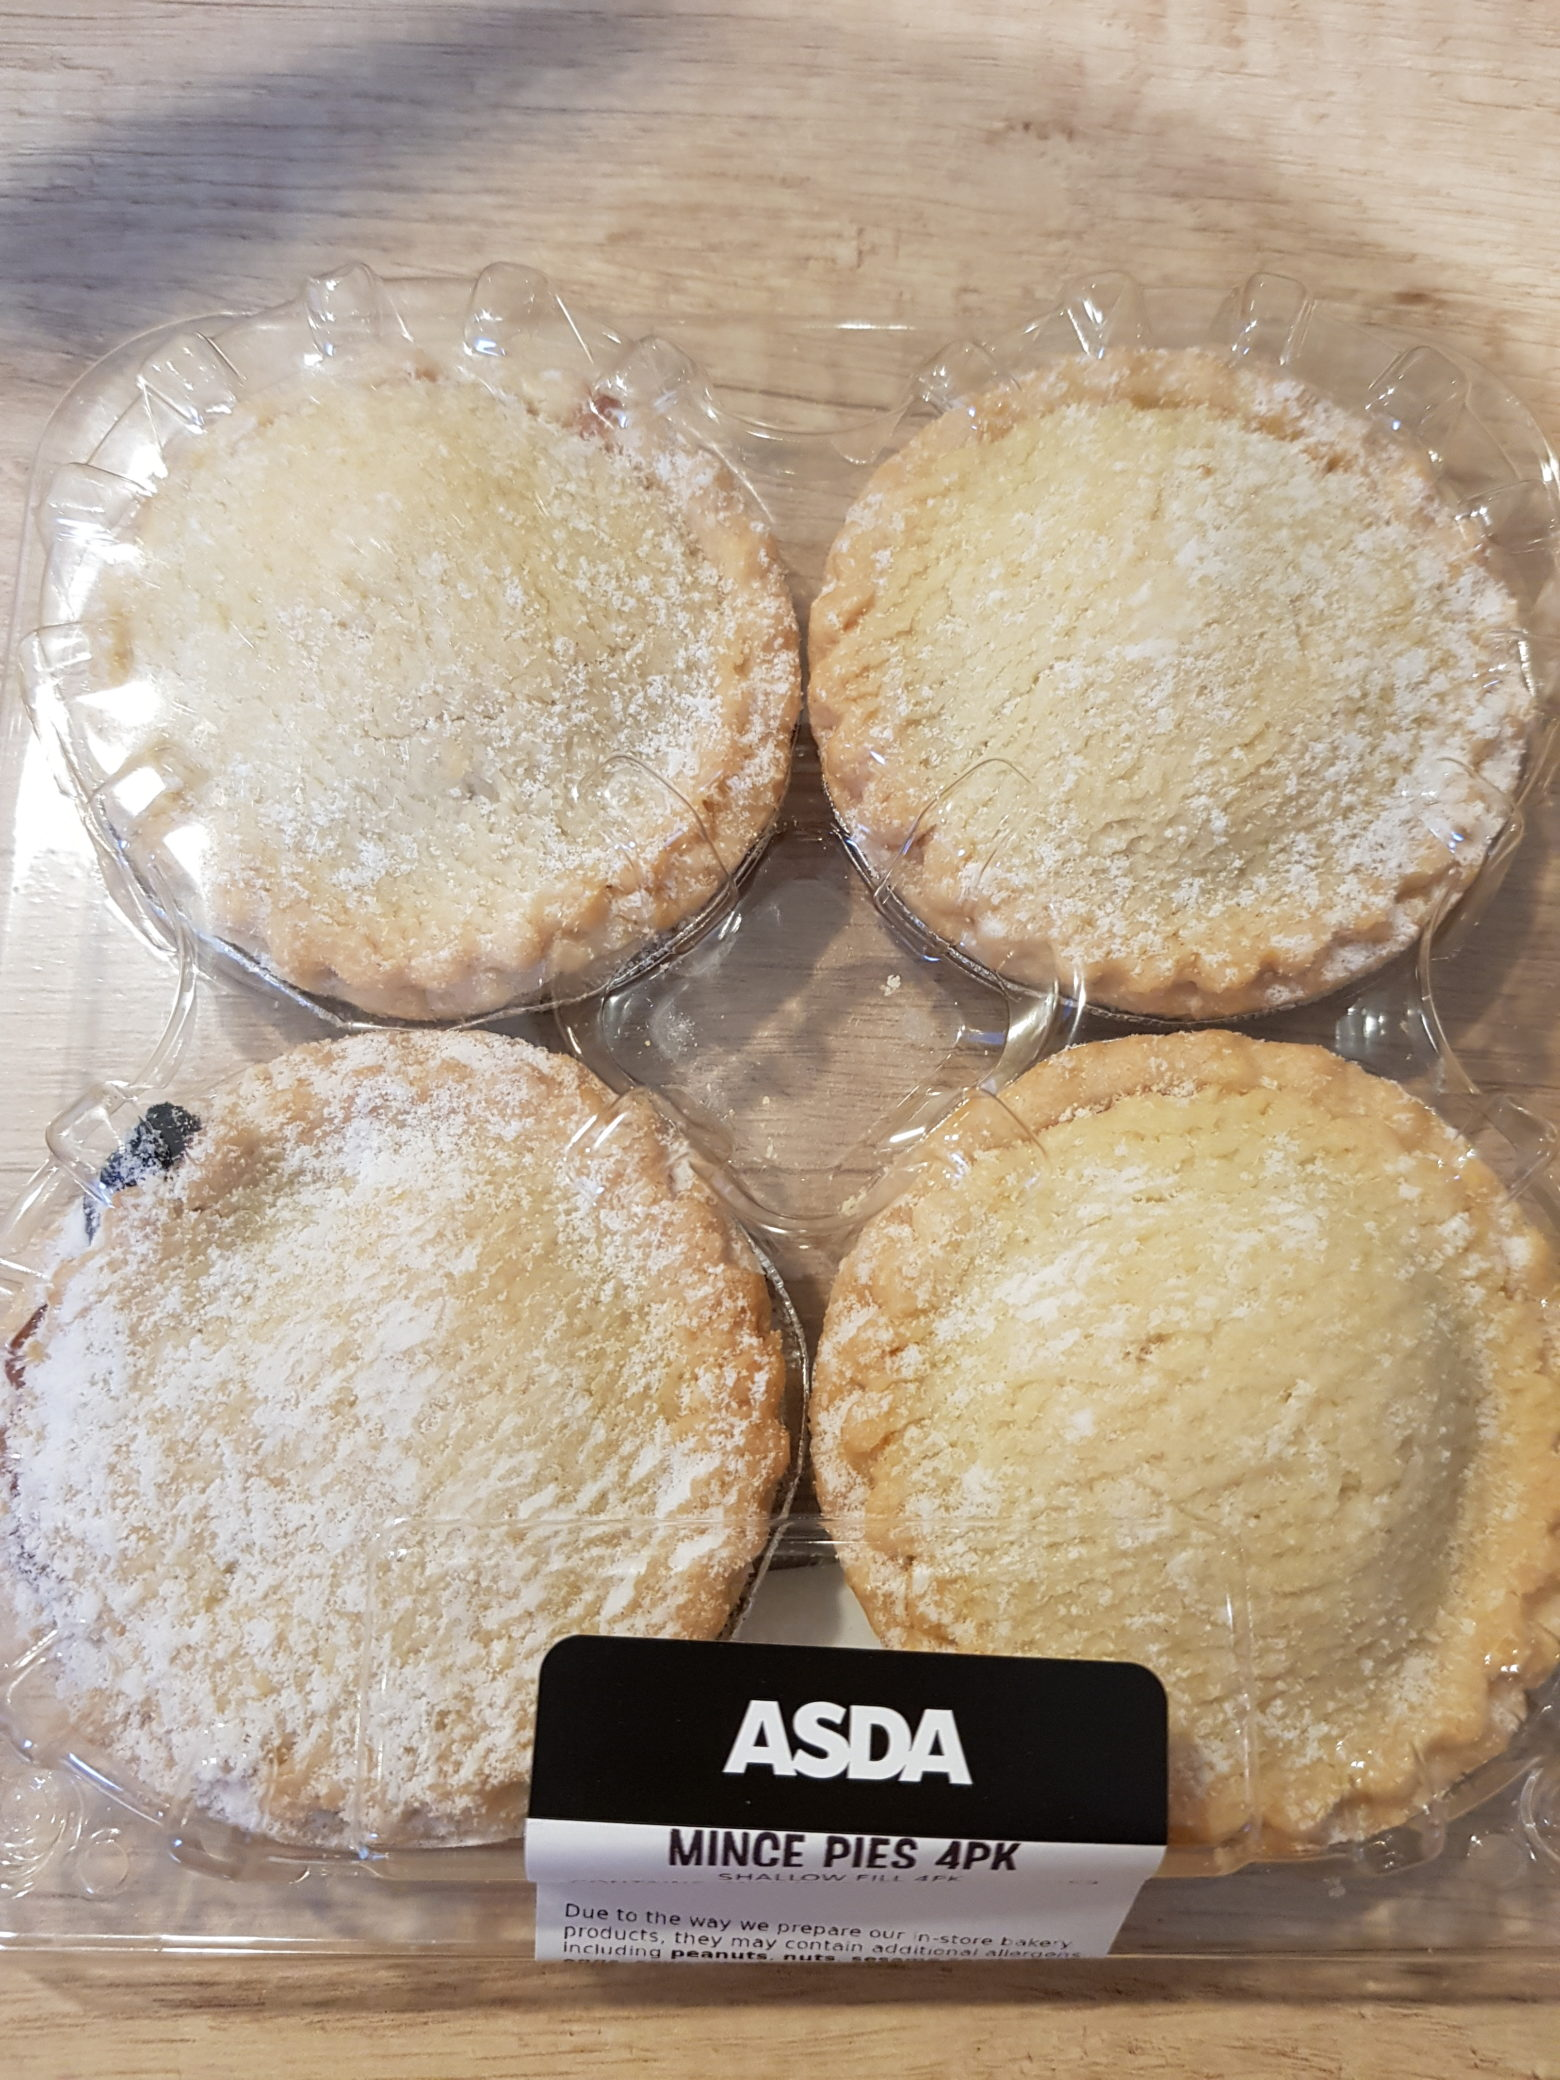 ASDA Shallow Fill Bakery Mince Pie Review 2019